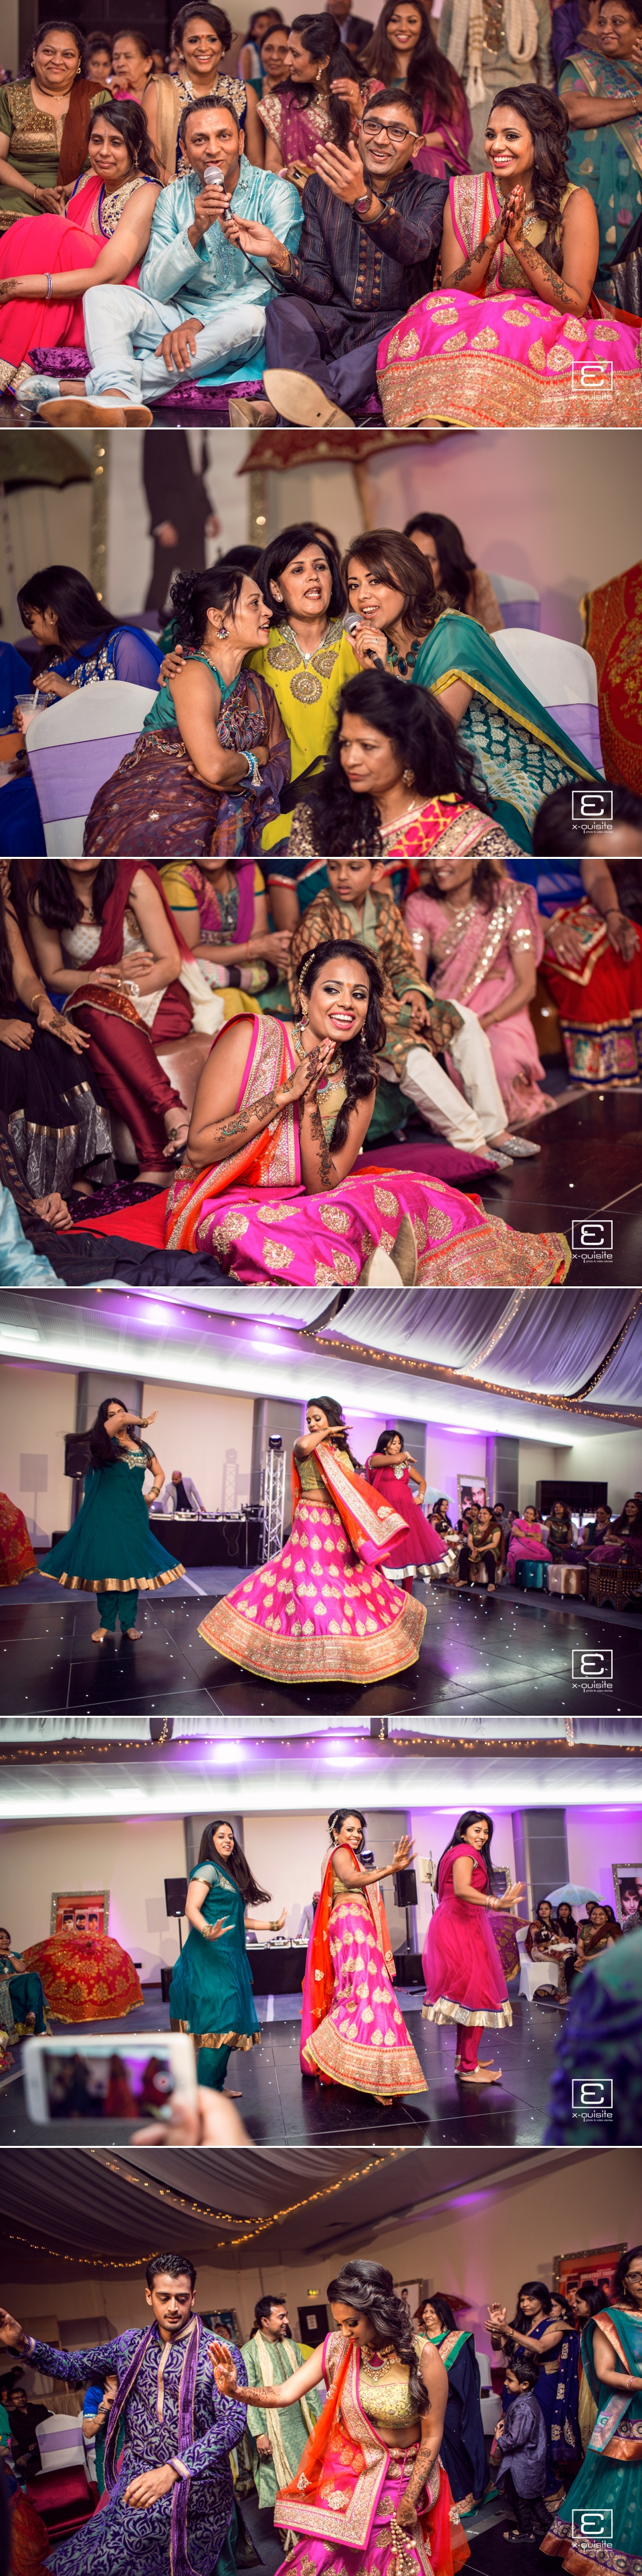 Newland-Manor-Hindu-Wedding_05